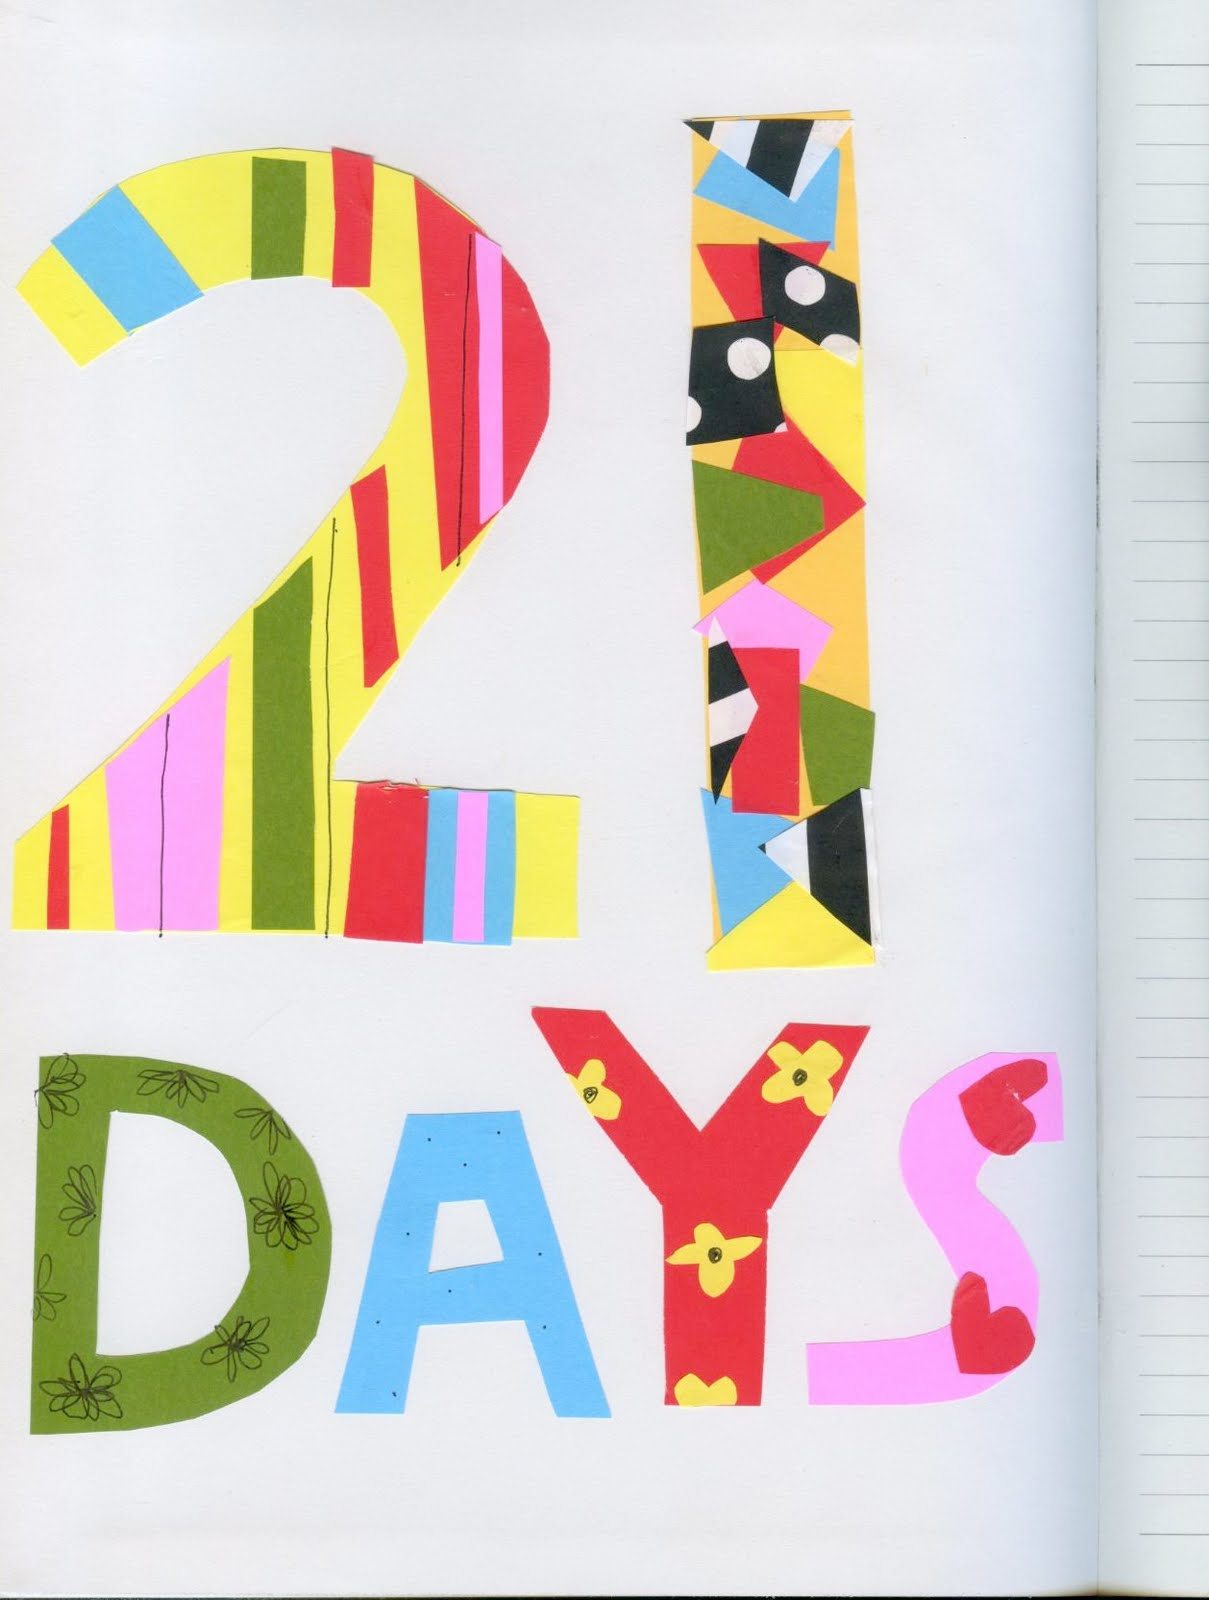 how to change habits in 21 days